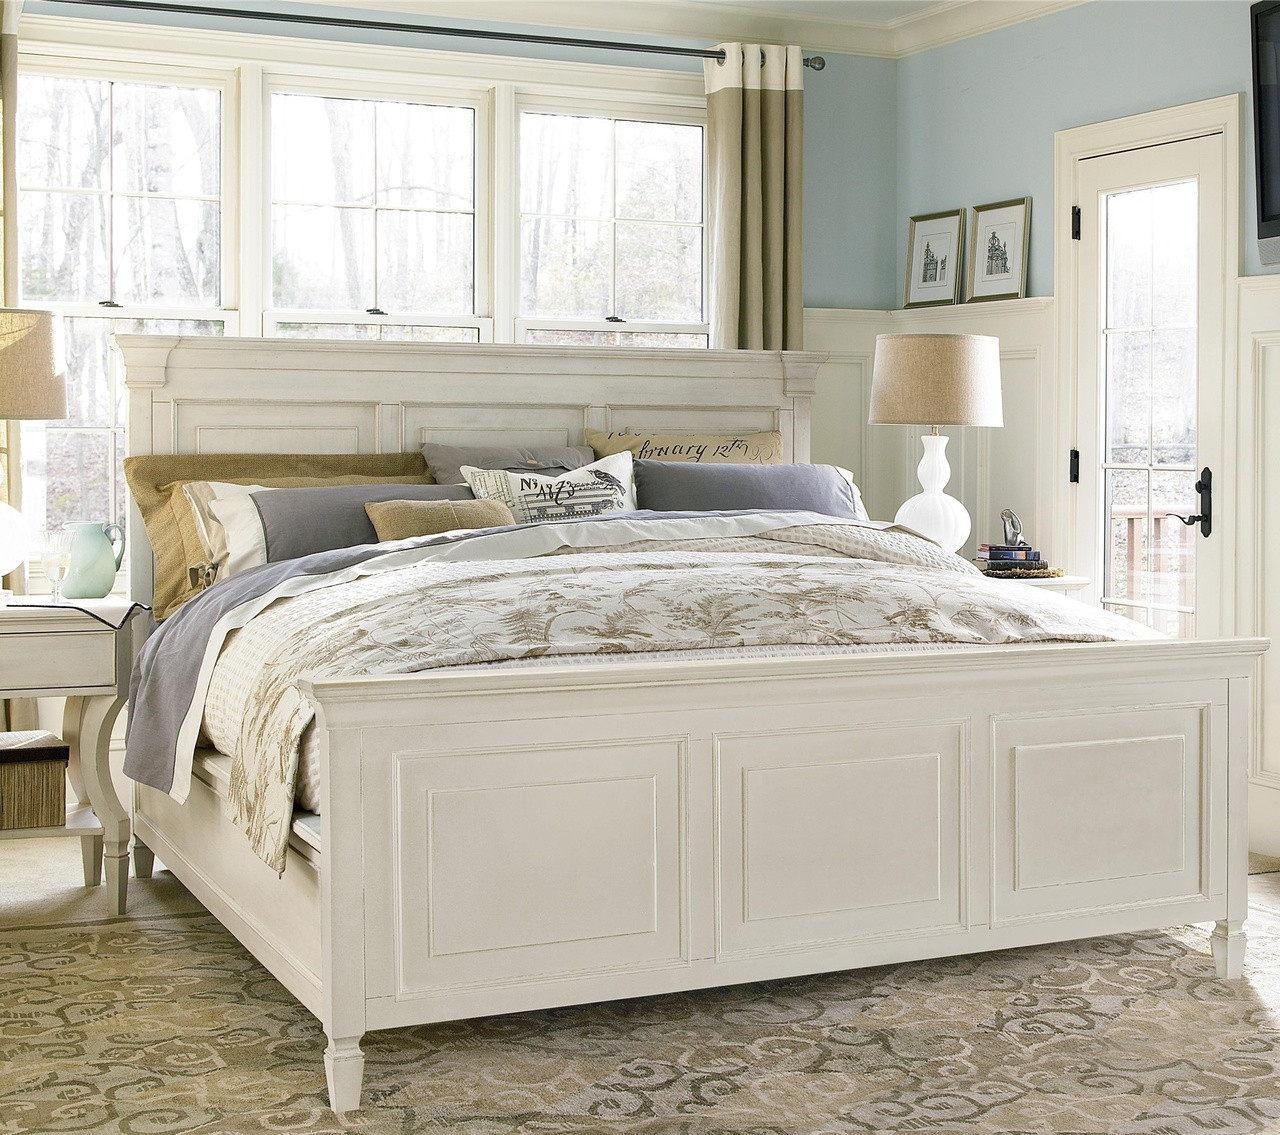 Queen Bed Frame Country Chic White Queen Size Bed Frame